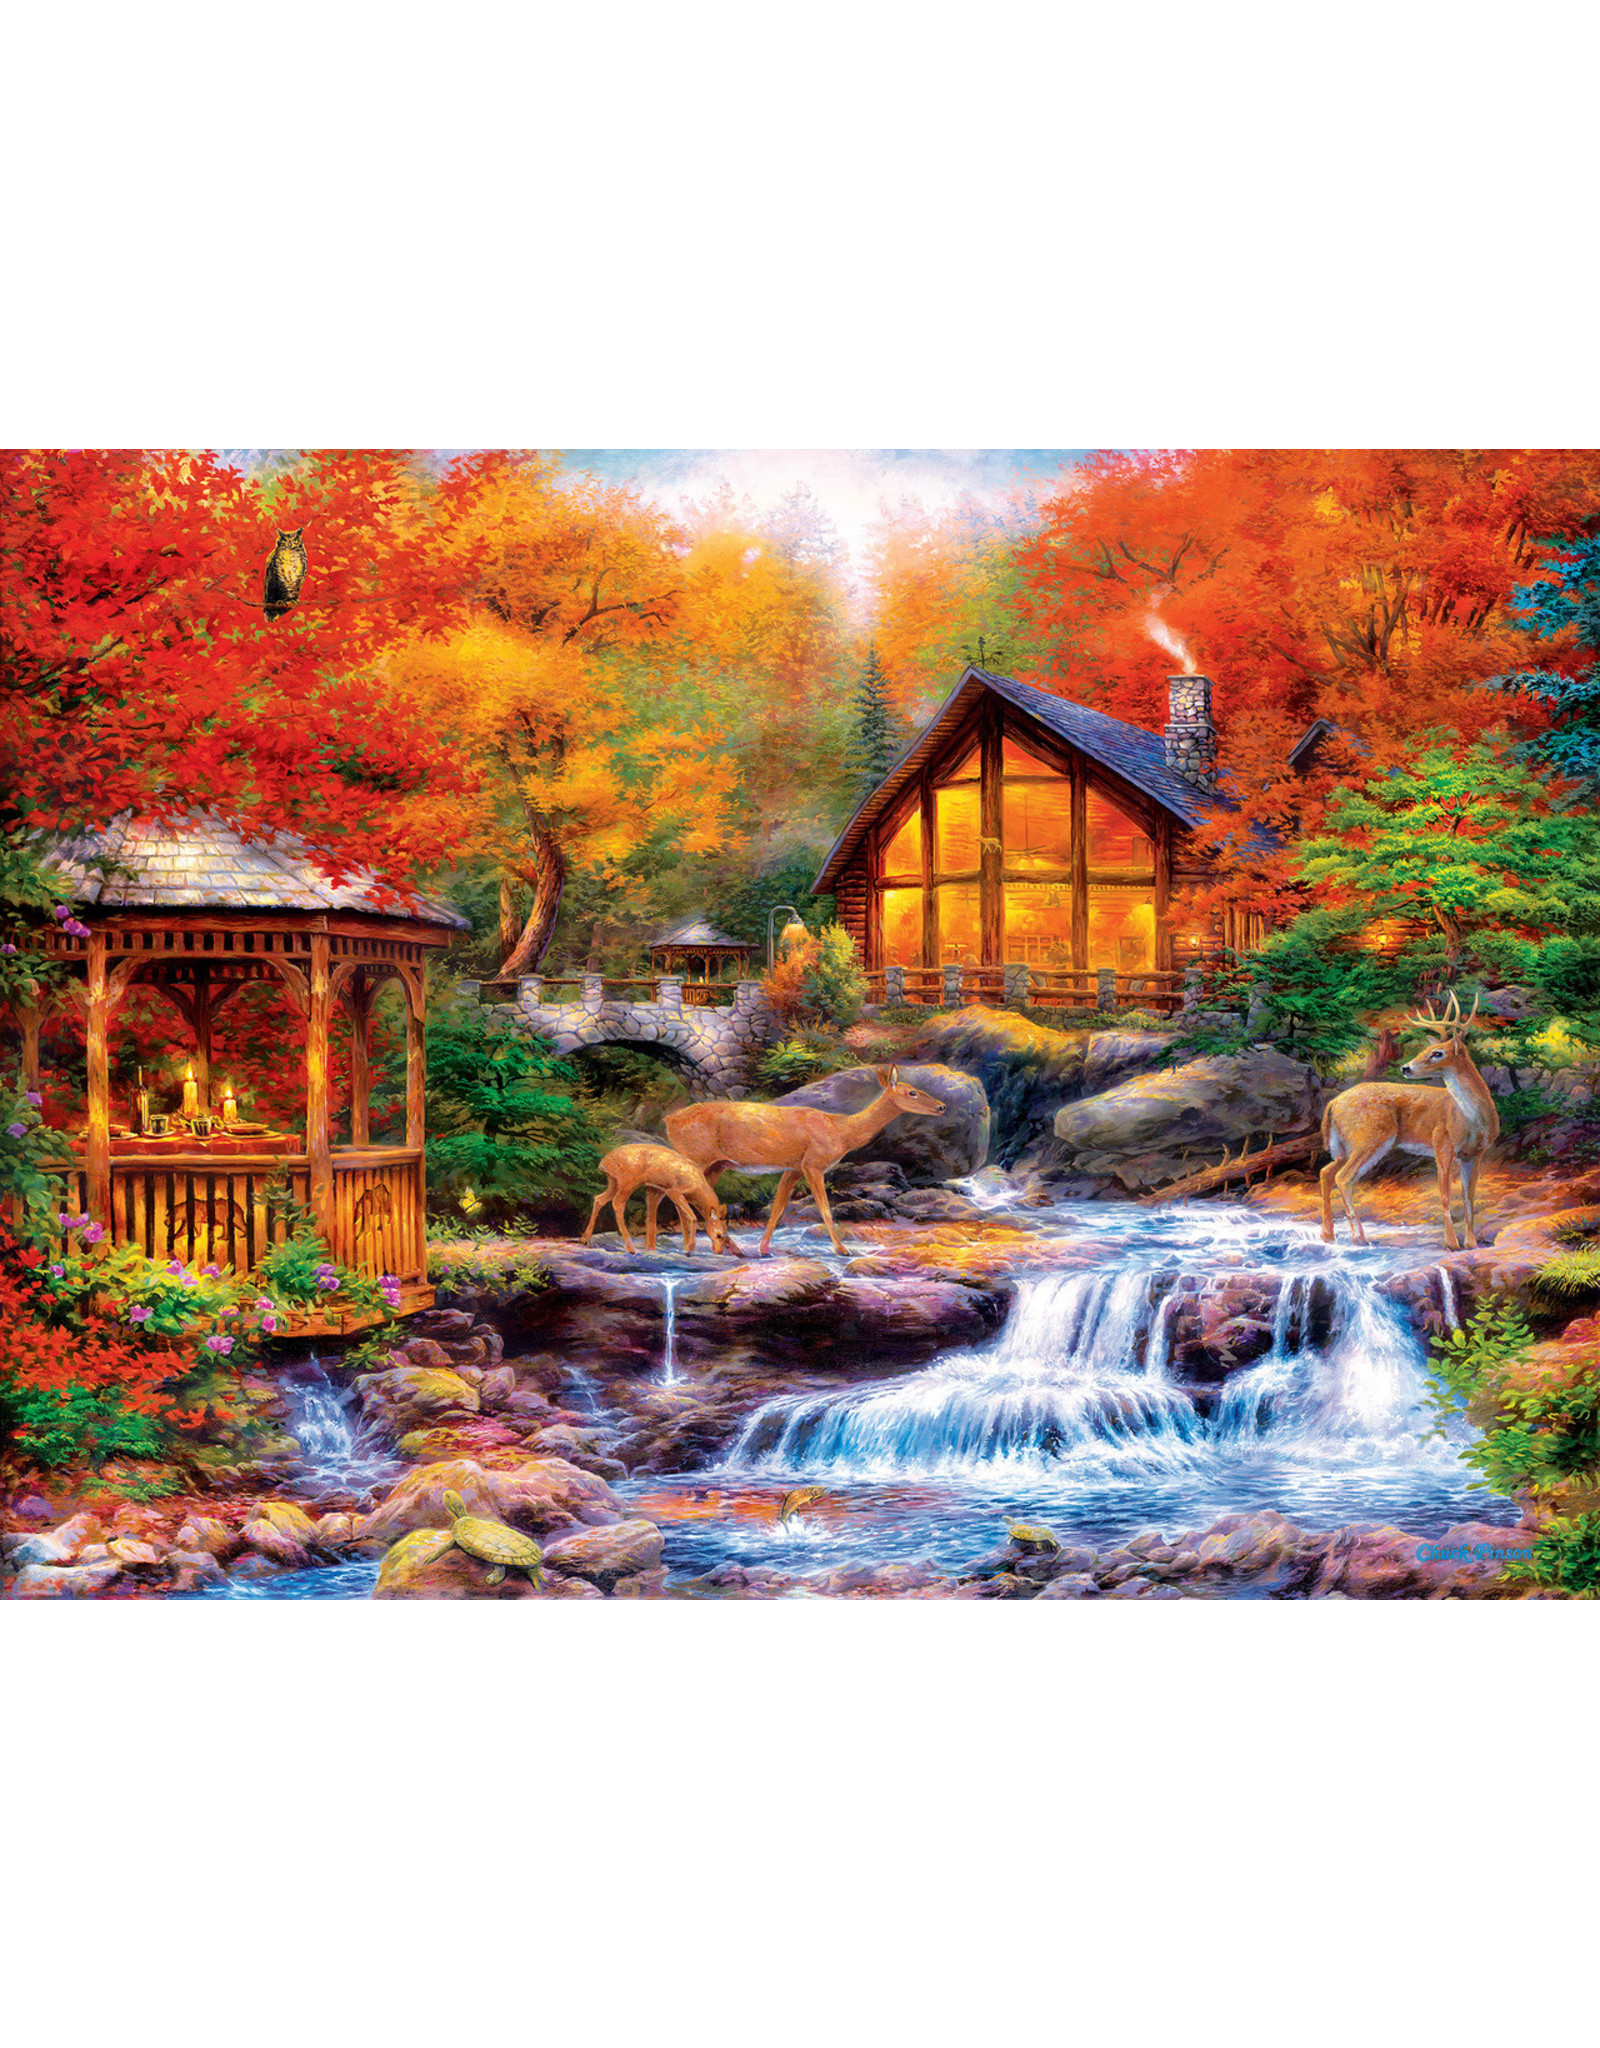 Master Pieces Art Gallery - Colors of Life 1000 pc Puzzle